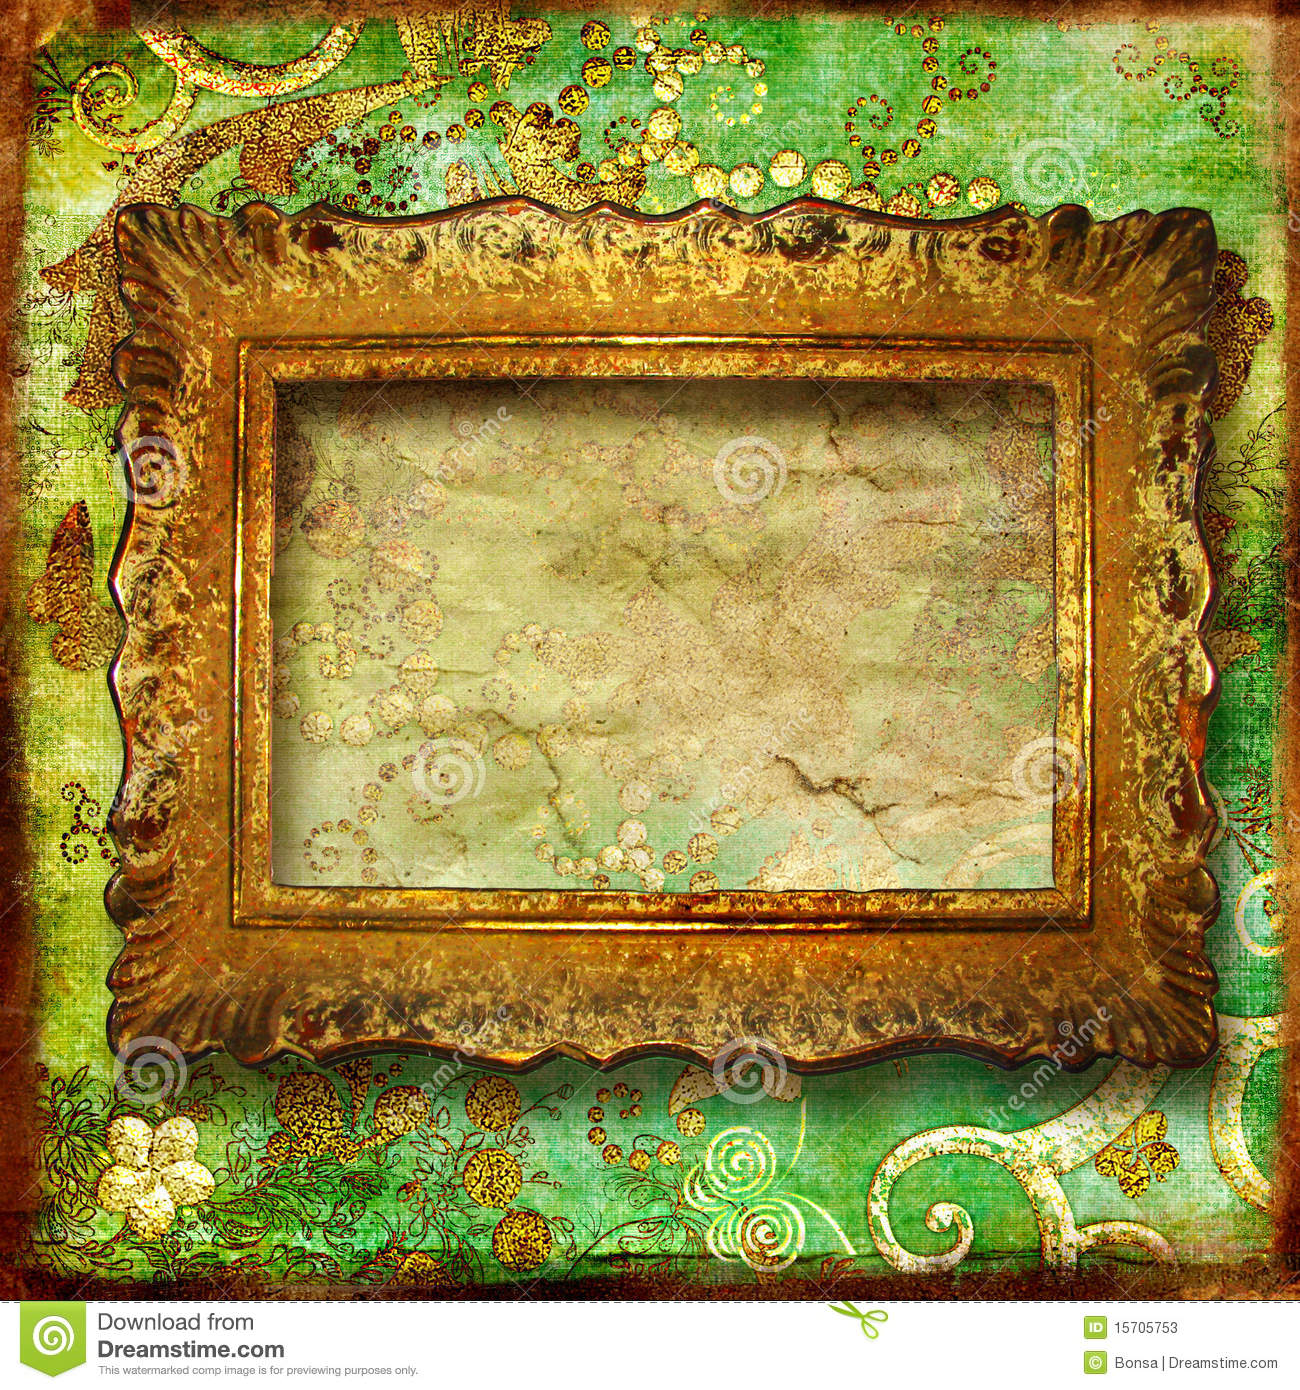 Http Www Dreamstime Com Stock Photos Vintage Art Image15705753